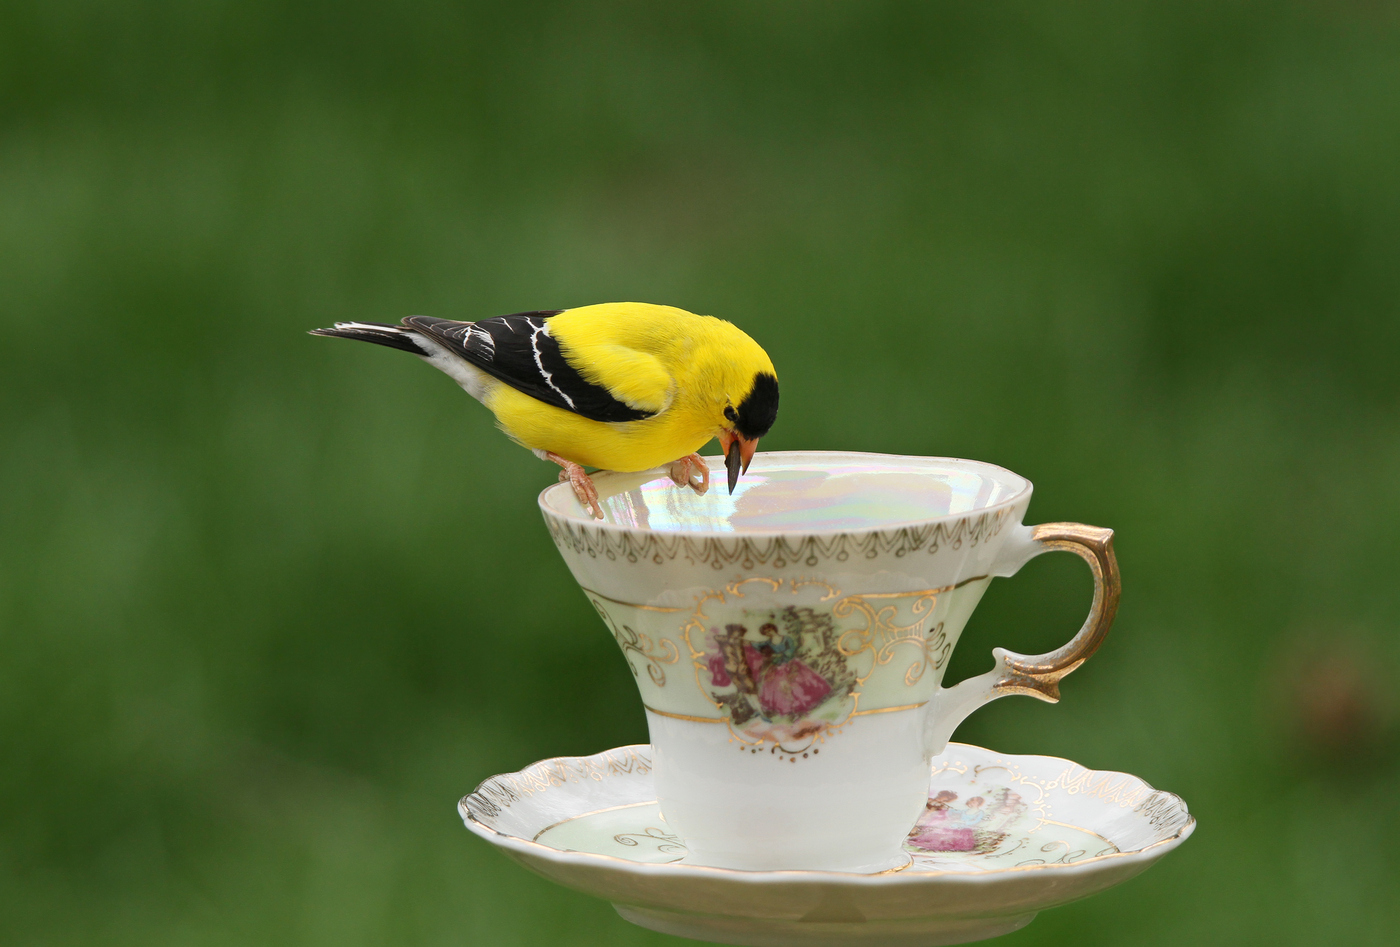 Goldfinch Teacup #6